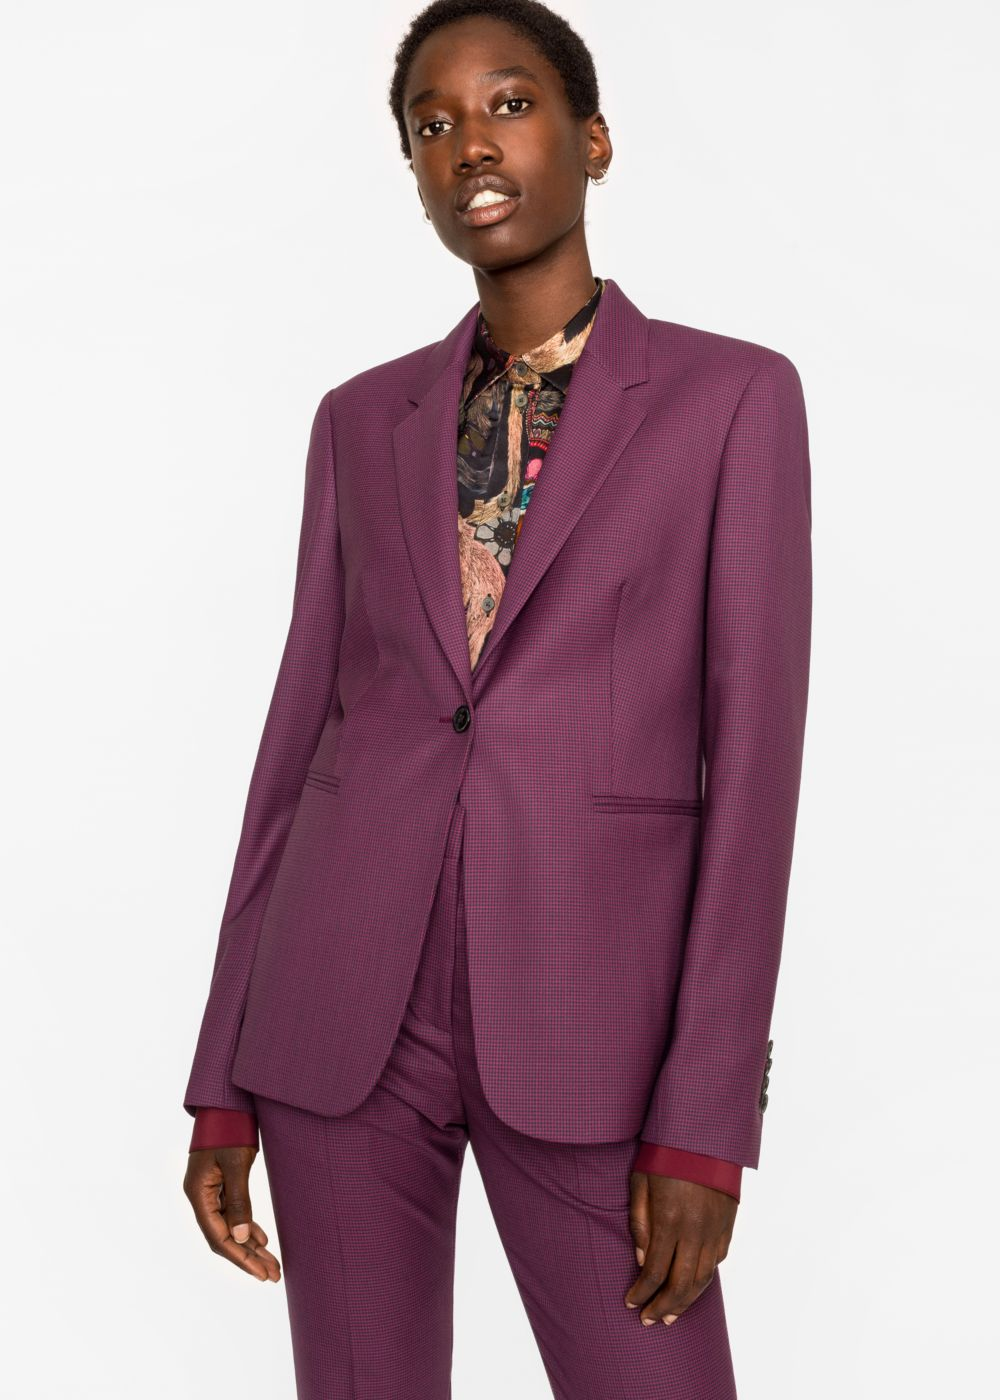 Paul Smith, £525, the trousers come in at £275 This is a big price leap for my high street edit- but gosh the details on it are gorgeous and the quality is beautiful. This suit looks amazing with trainers or heels and I love it with tee shirts or a really beautiful pussy bow blouse.